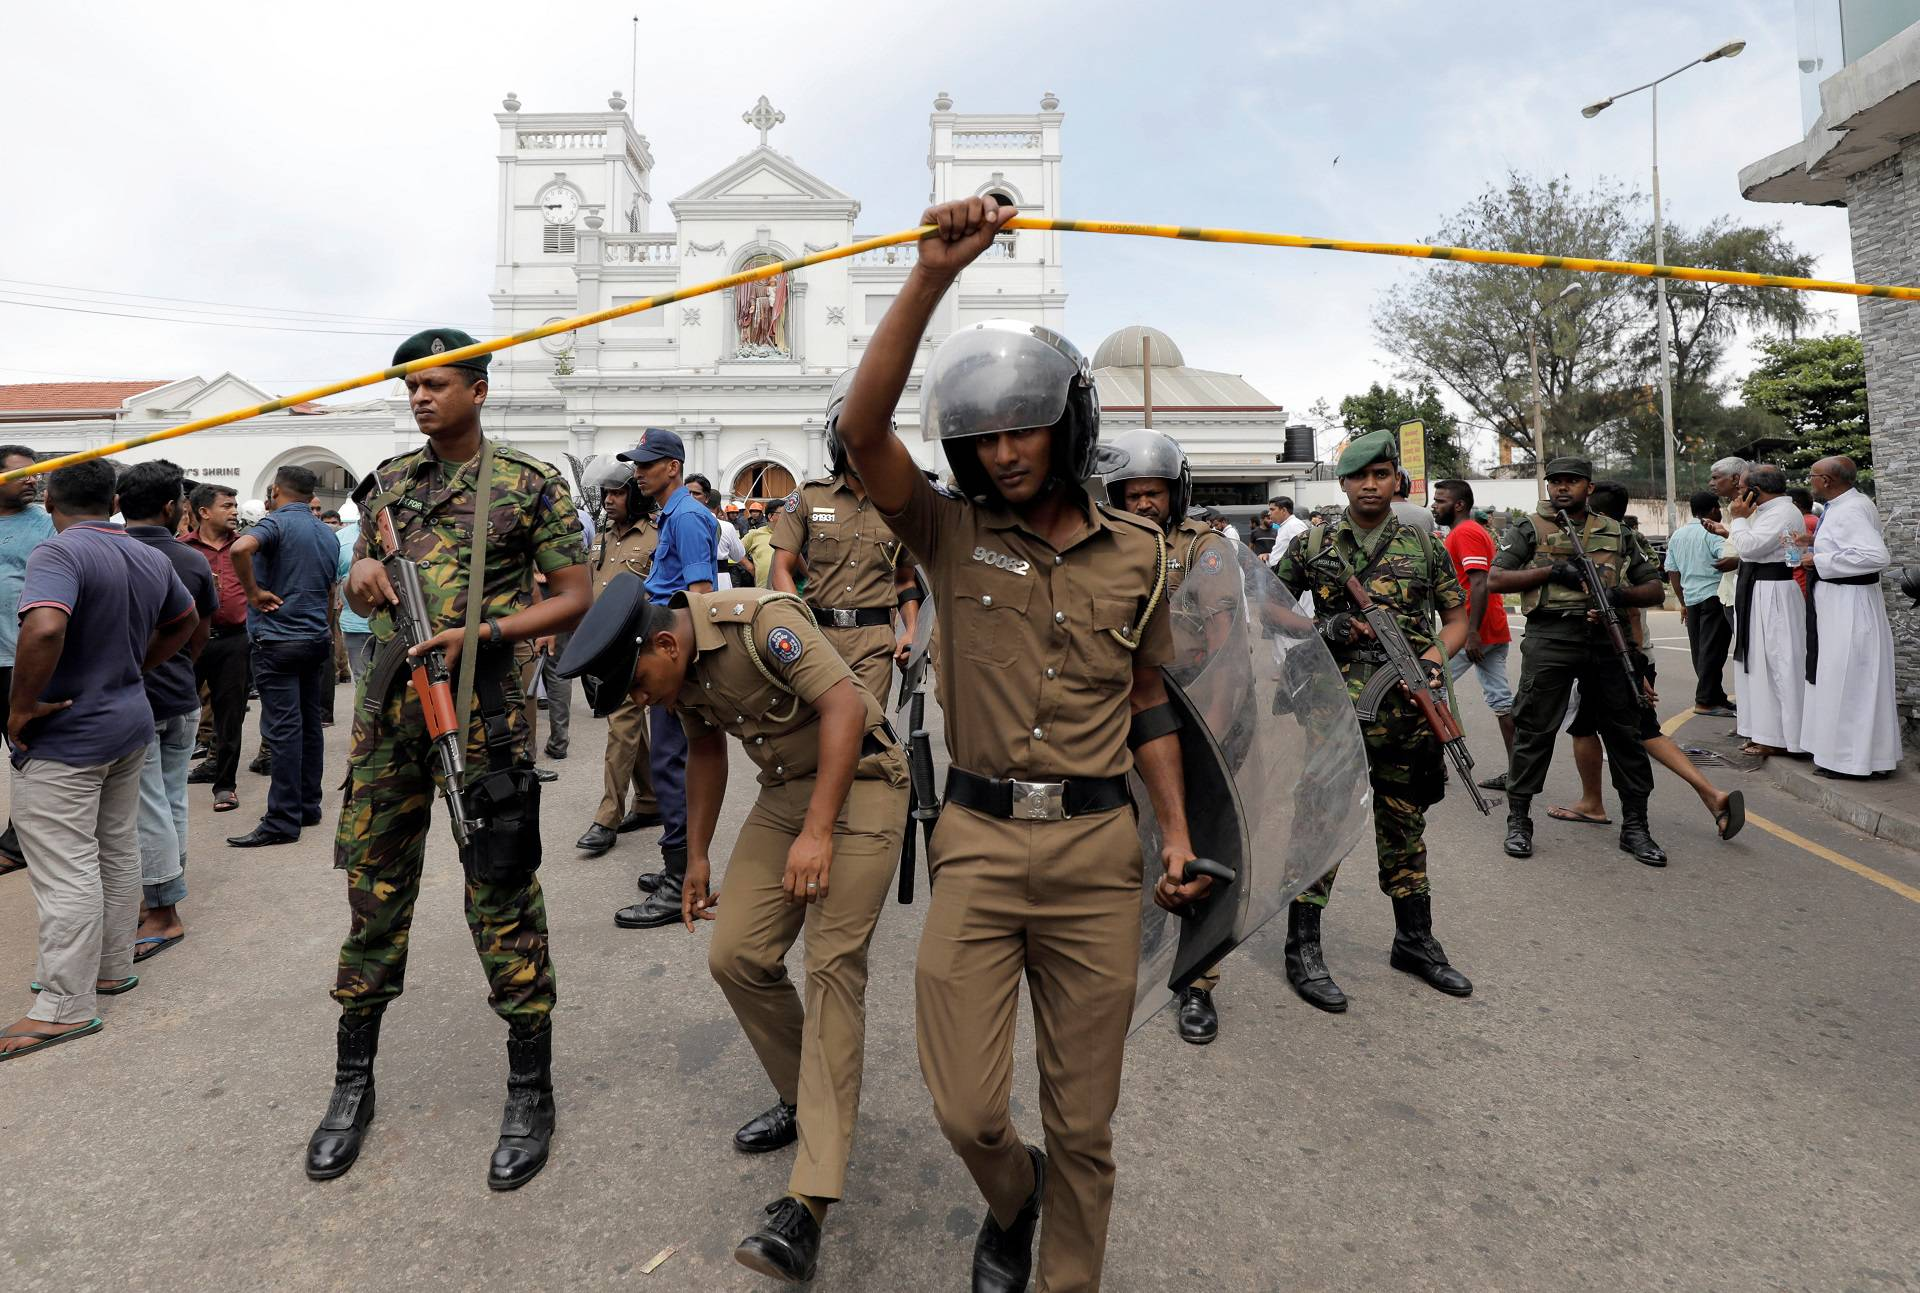 Sri Lankan military officials stand guard in front of the St. Anthony's Shrine, Kochchikade church after an explosion in Colombo